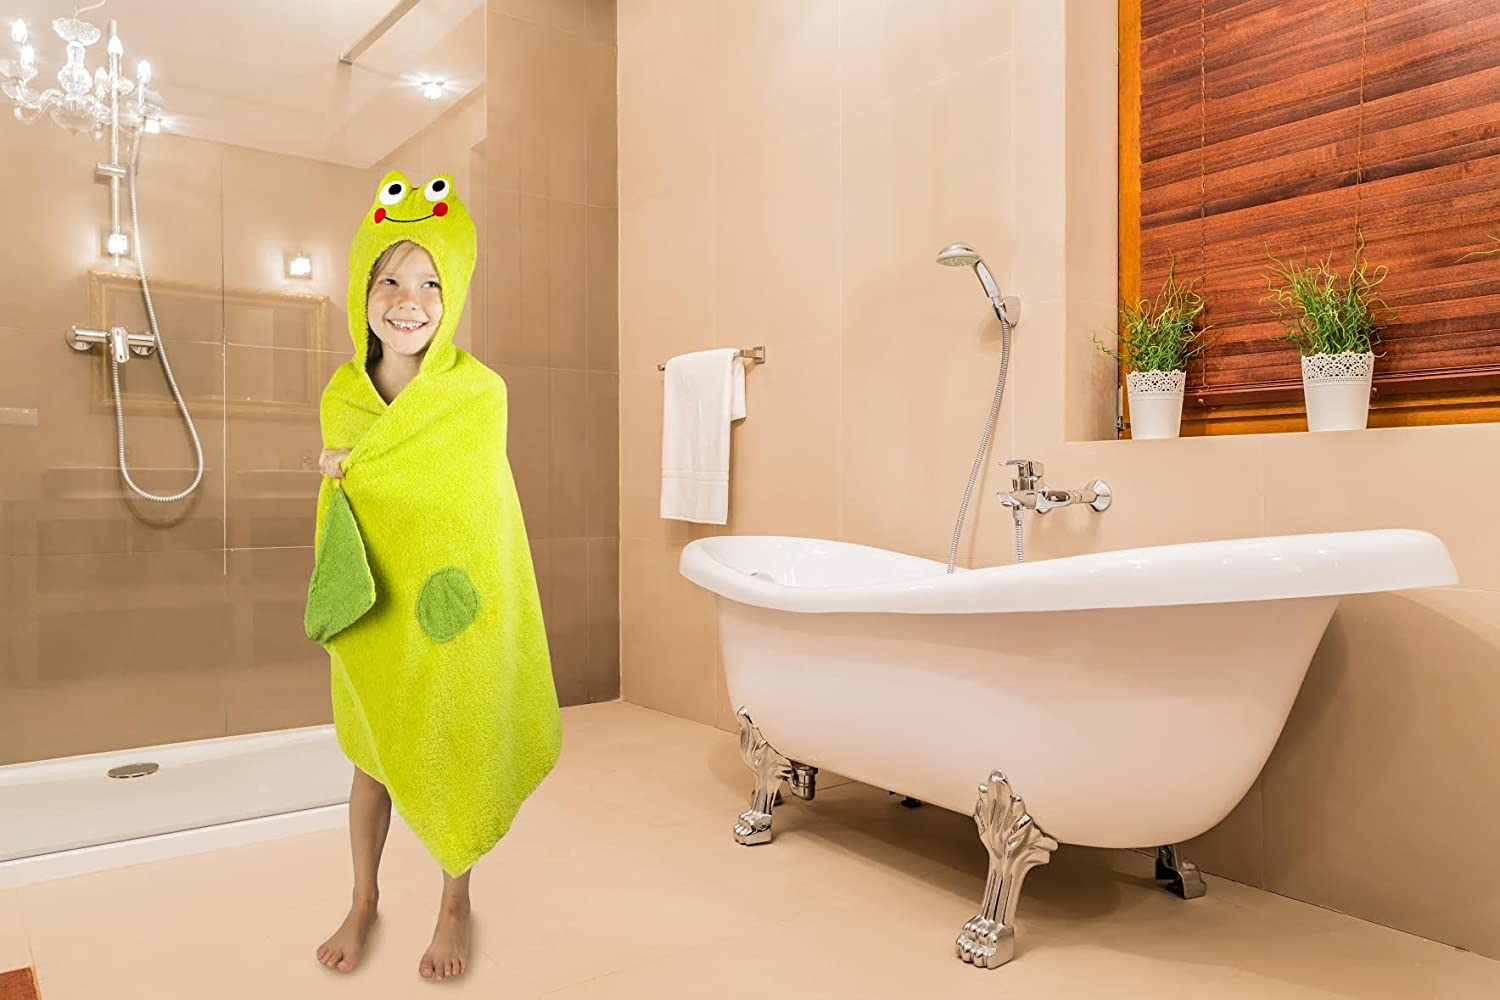 Amazon.com : Kids Hooded Bath Towel   Green Frog Design Terry Cotton Baby  Wrap Towel For Toddlers And Children   By Snugly Frog Towel : Baby